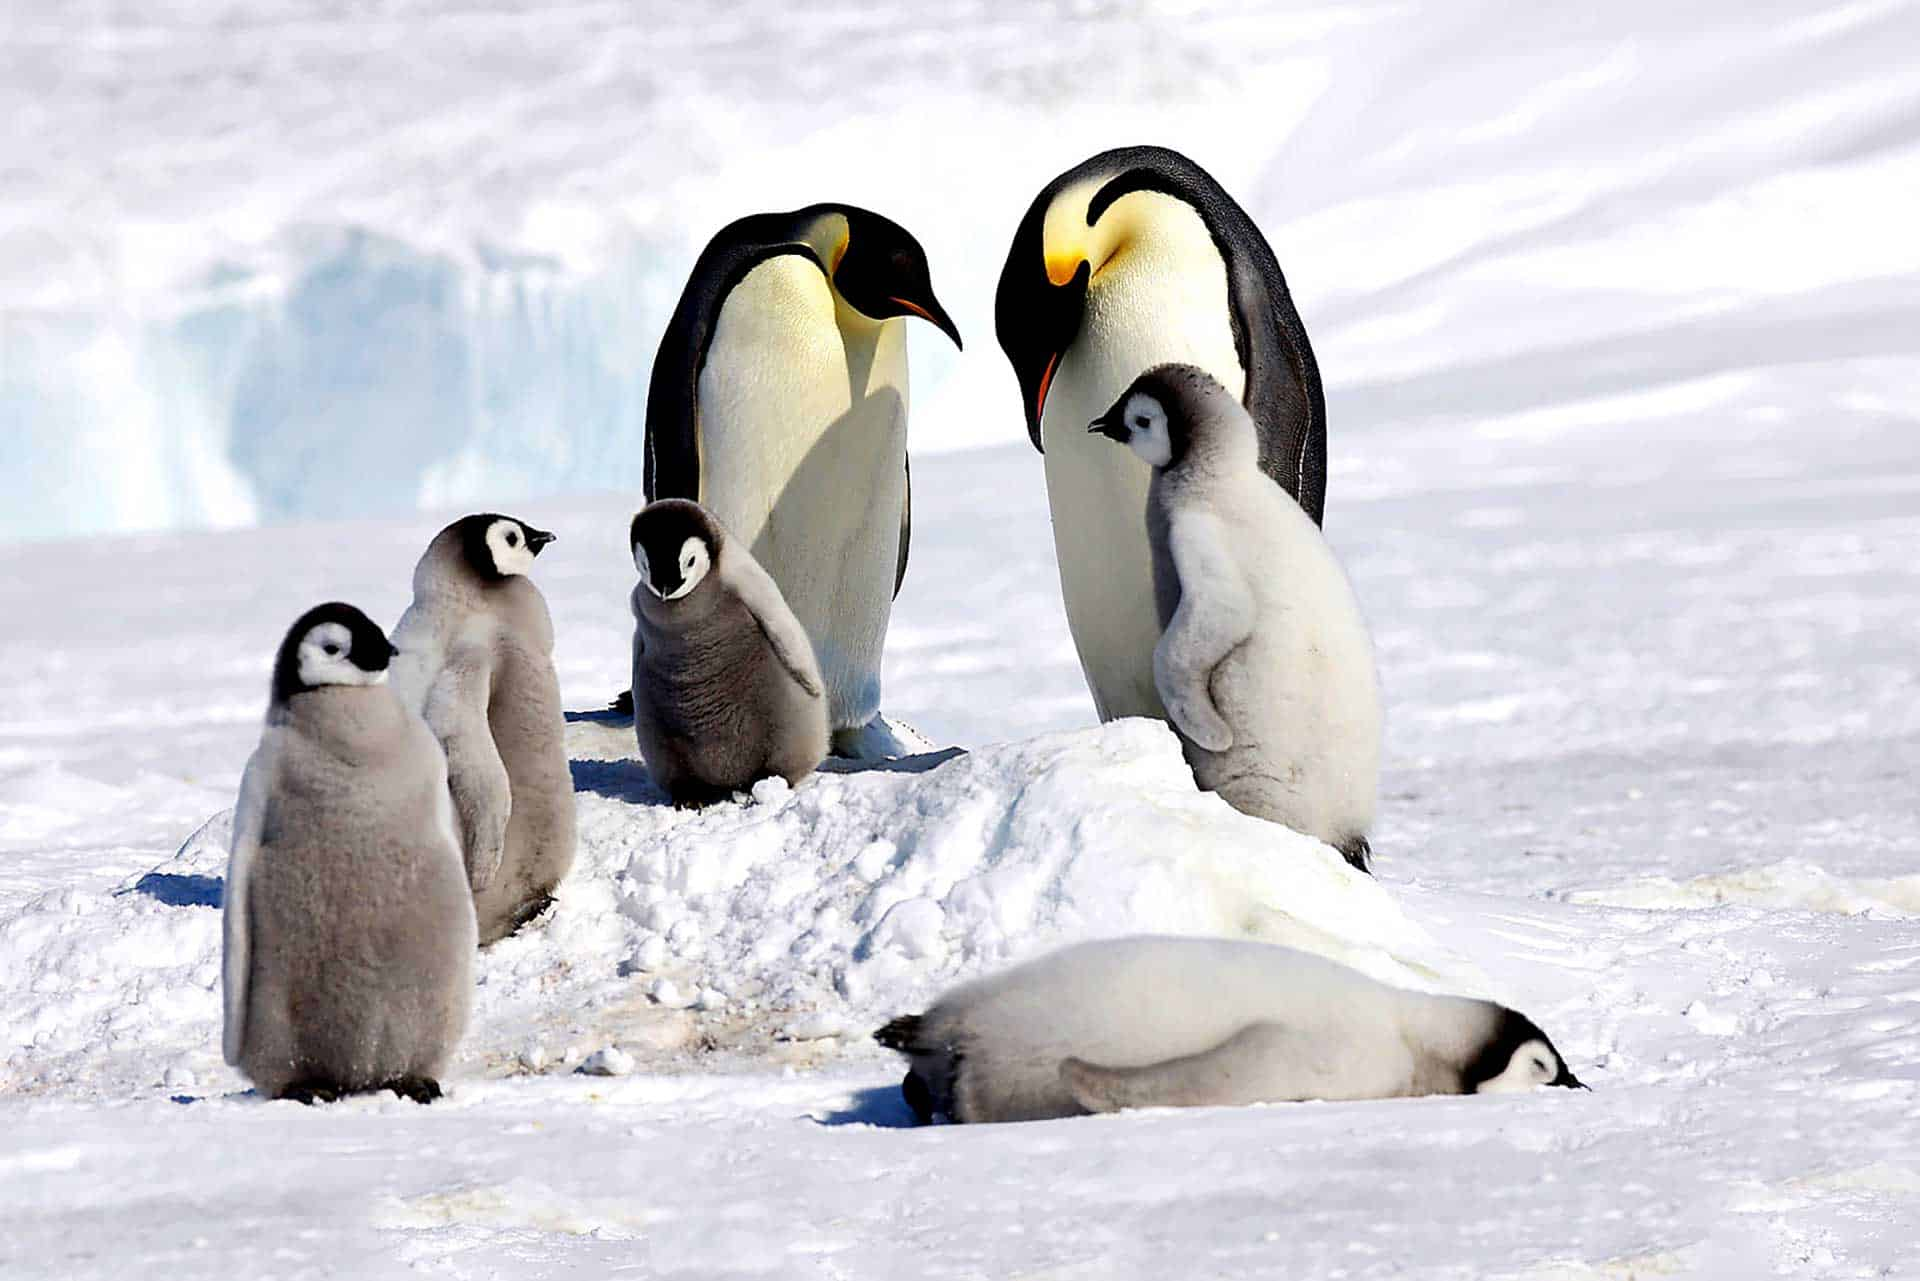 Emperor Penguins and chicks Ross Sea Expedition